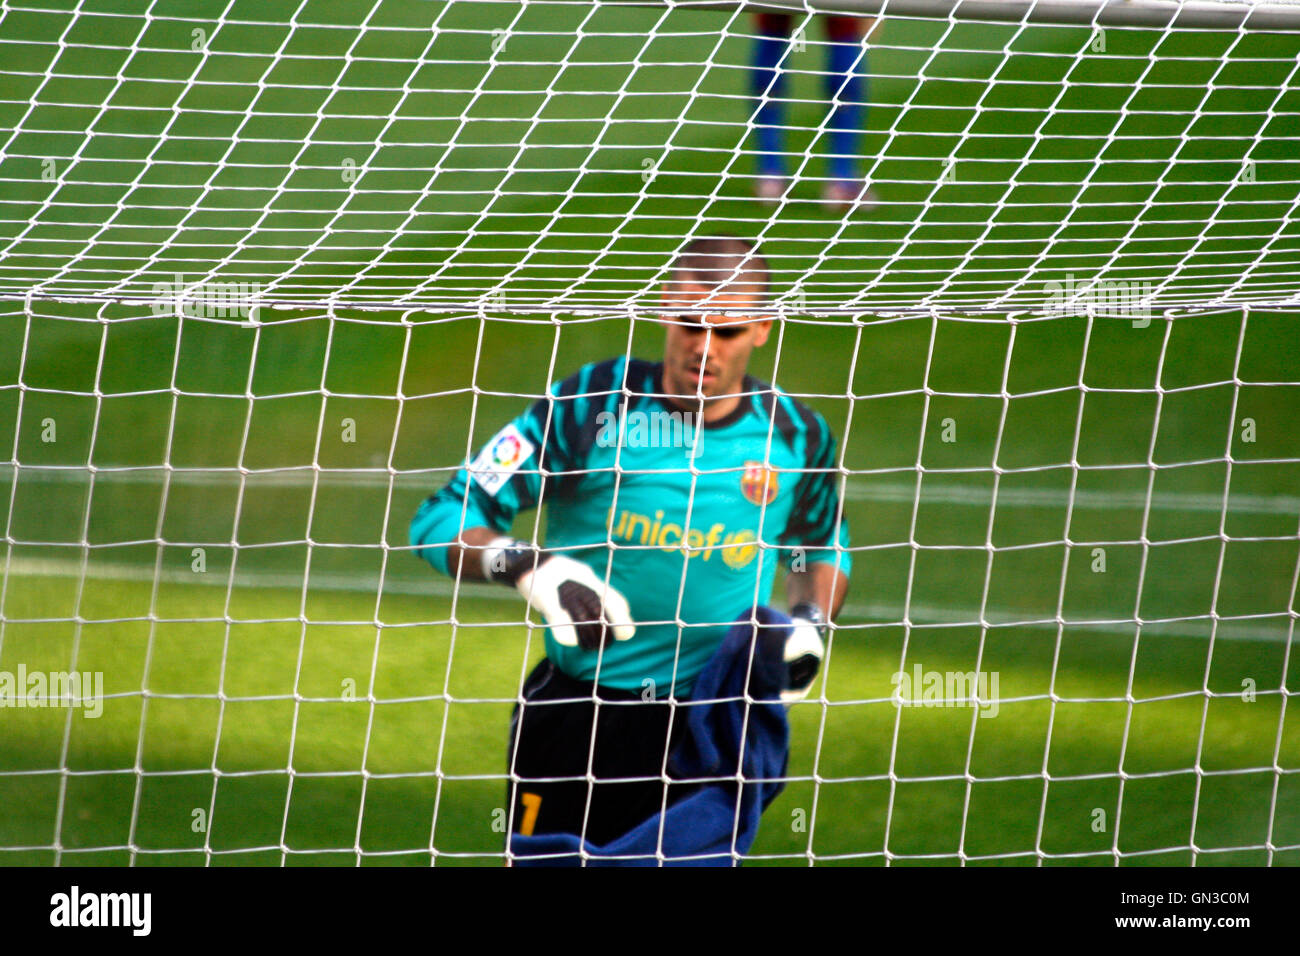 FC Barcelona goalkeeper Victor Valdes behind the net in the Camp nou stadium on May 08, 2011 - Stock Image